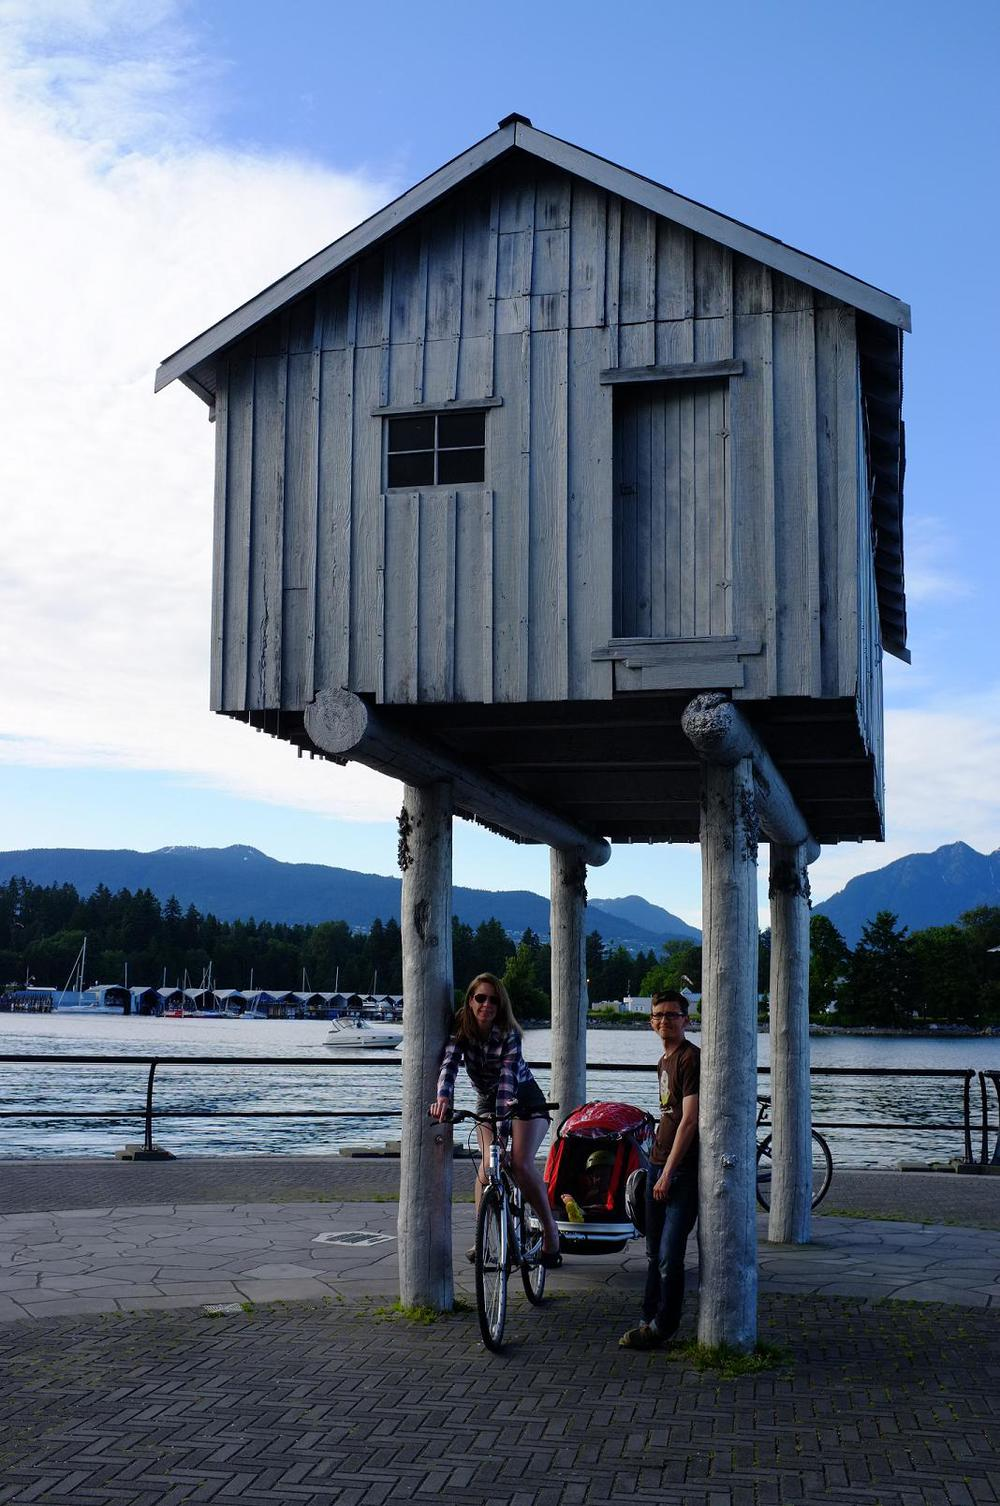 Shack on Stilts on Seawall Path